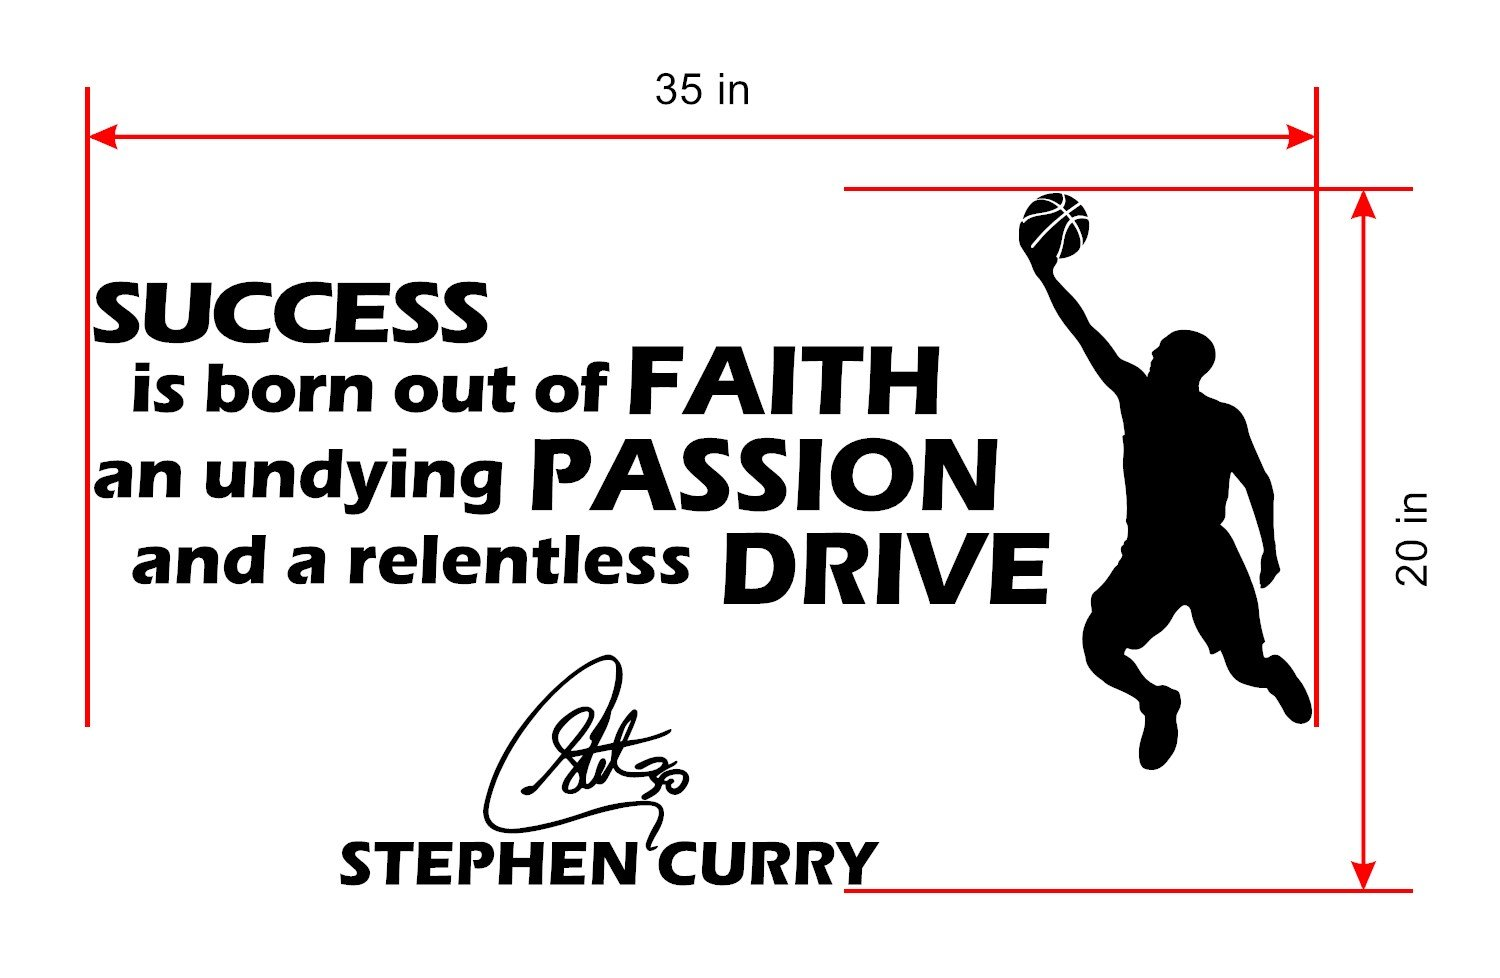 f94d5ac07a0e Basketball Wall Decals - Stephen Curry Famous Quote Decals - Motivational  Quotes Wall Decals  All Star Sports NBA Players Life Wall Art Decals.